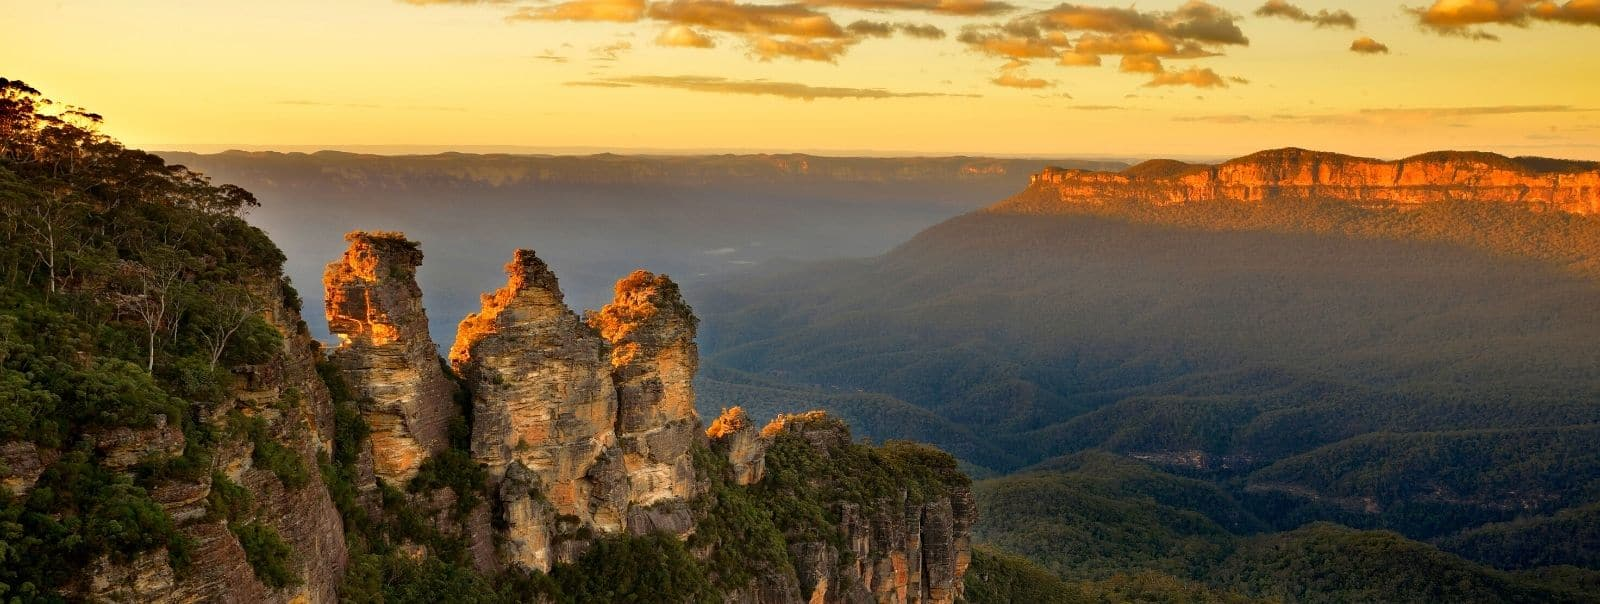 Sunset over the 3 Sisters & Jamison Valley during Discover Blue Mountains in a Day